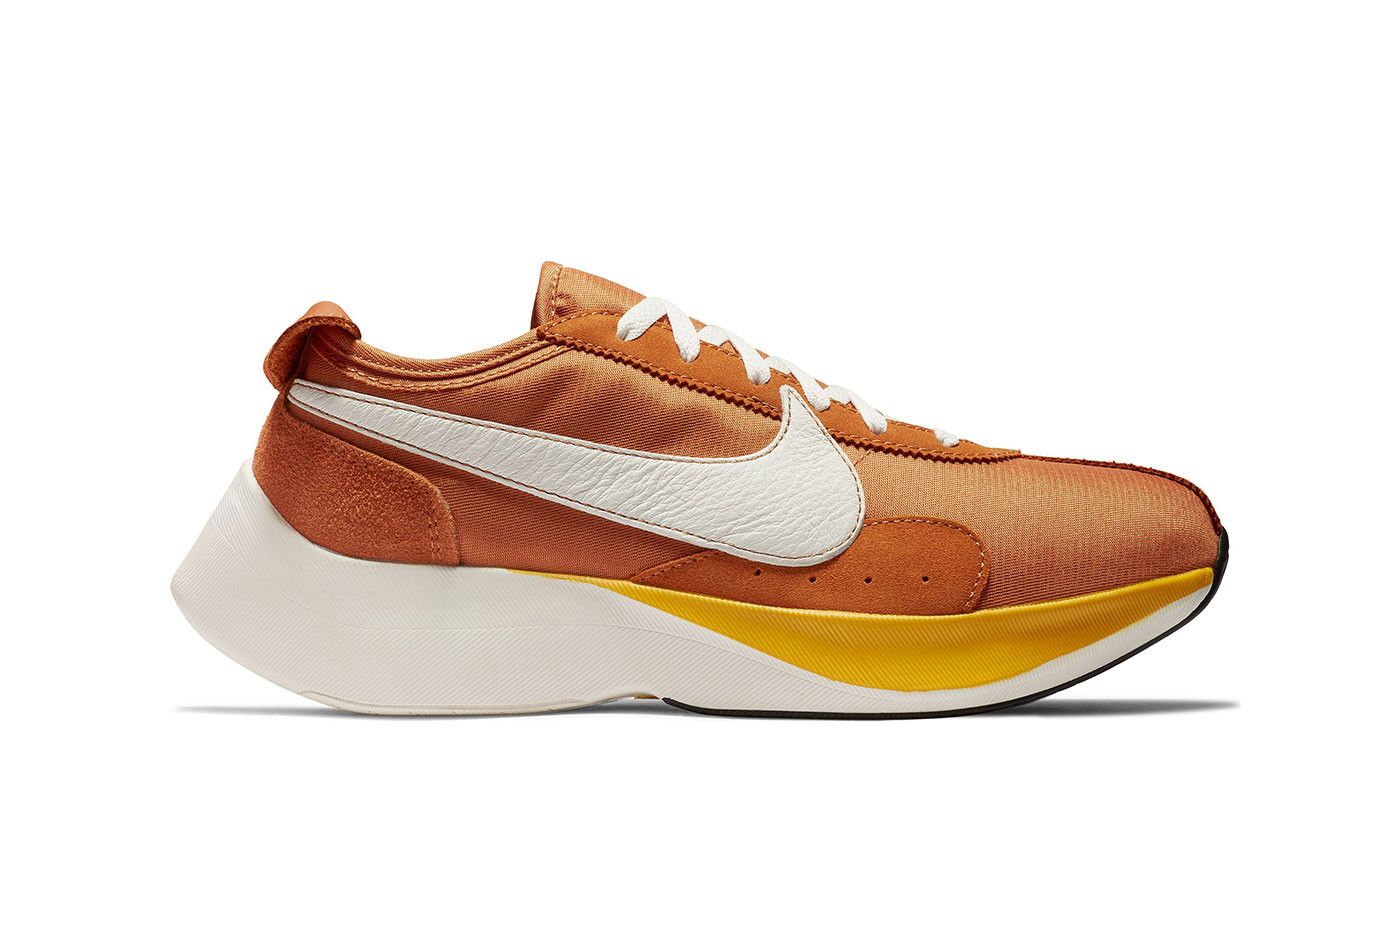 9d1c18c0953b Another Nike Moon Racer QS Surfaces in Brown Colorway